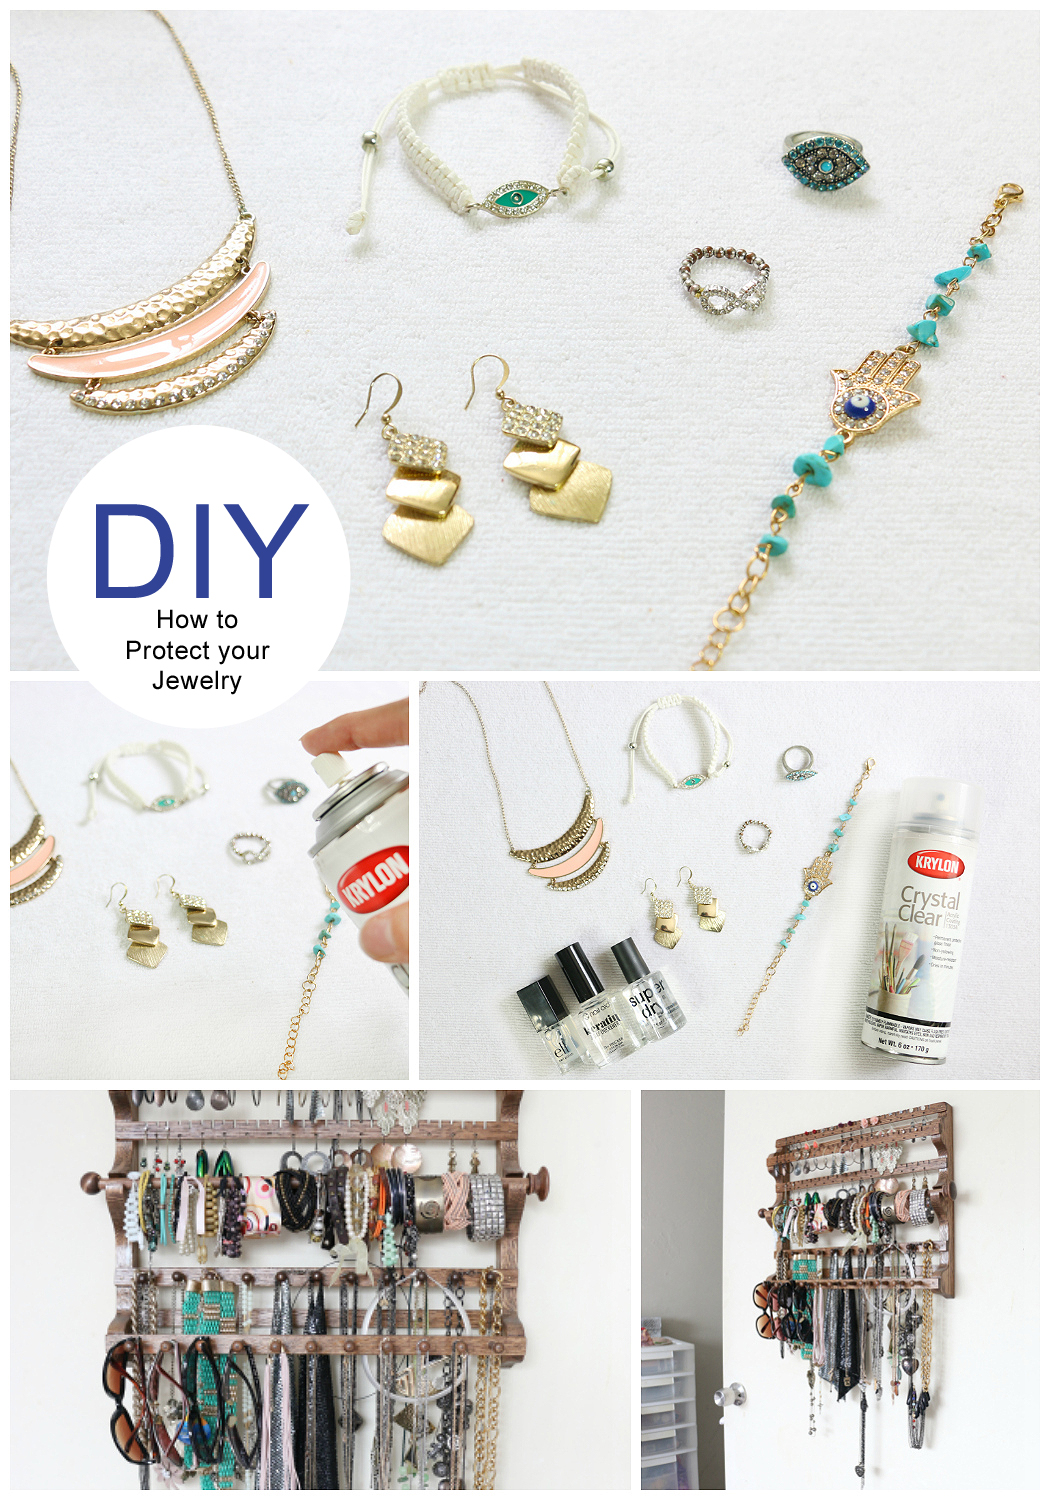 How to Protect Your Jewelry / Cómo Proteger tus Joyas - LynSire